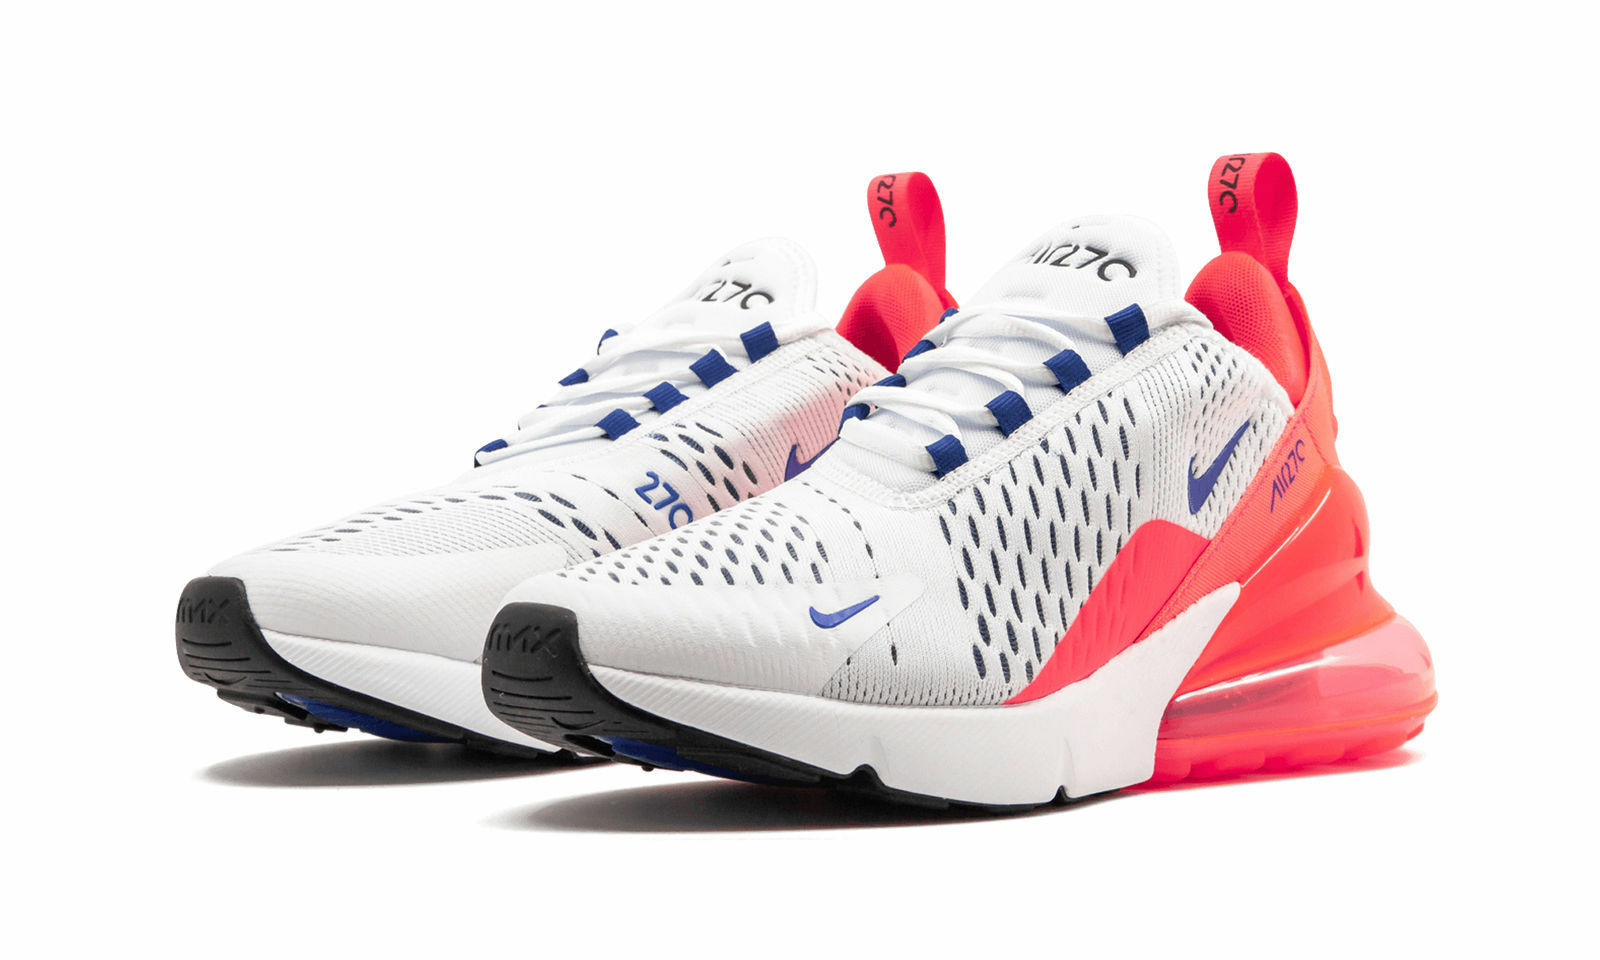 Women's Nike Air Max 270 White Ultramarine Solar Red Pink size 5.5 AH6789 101